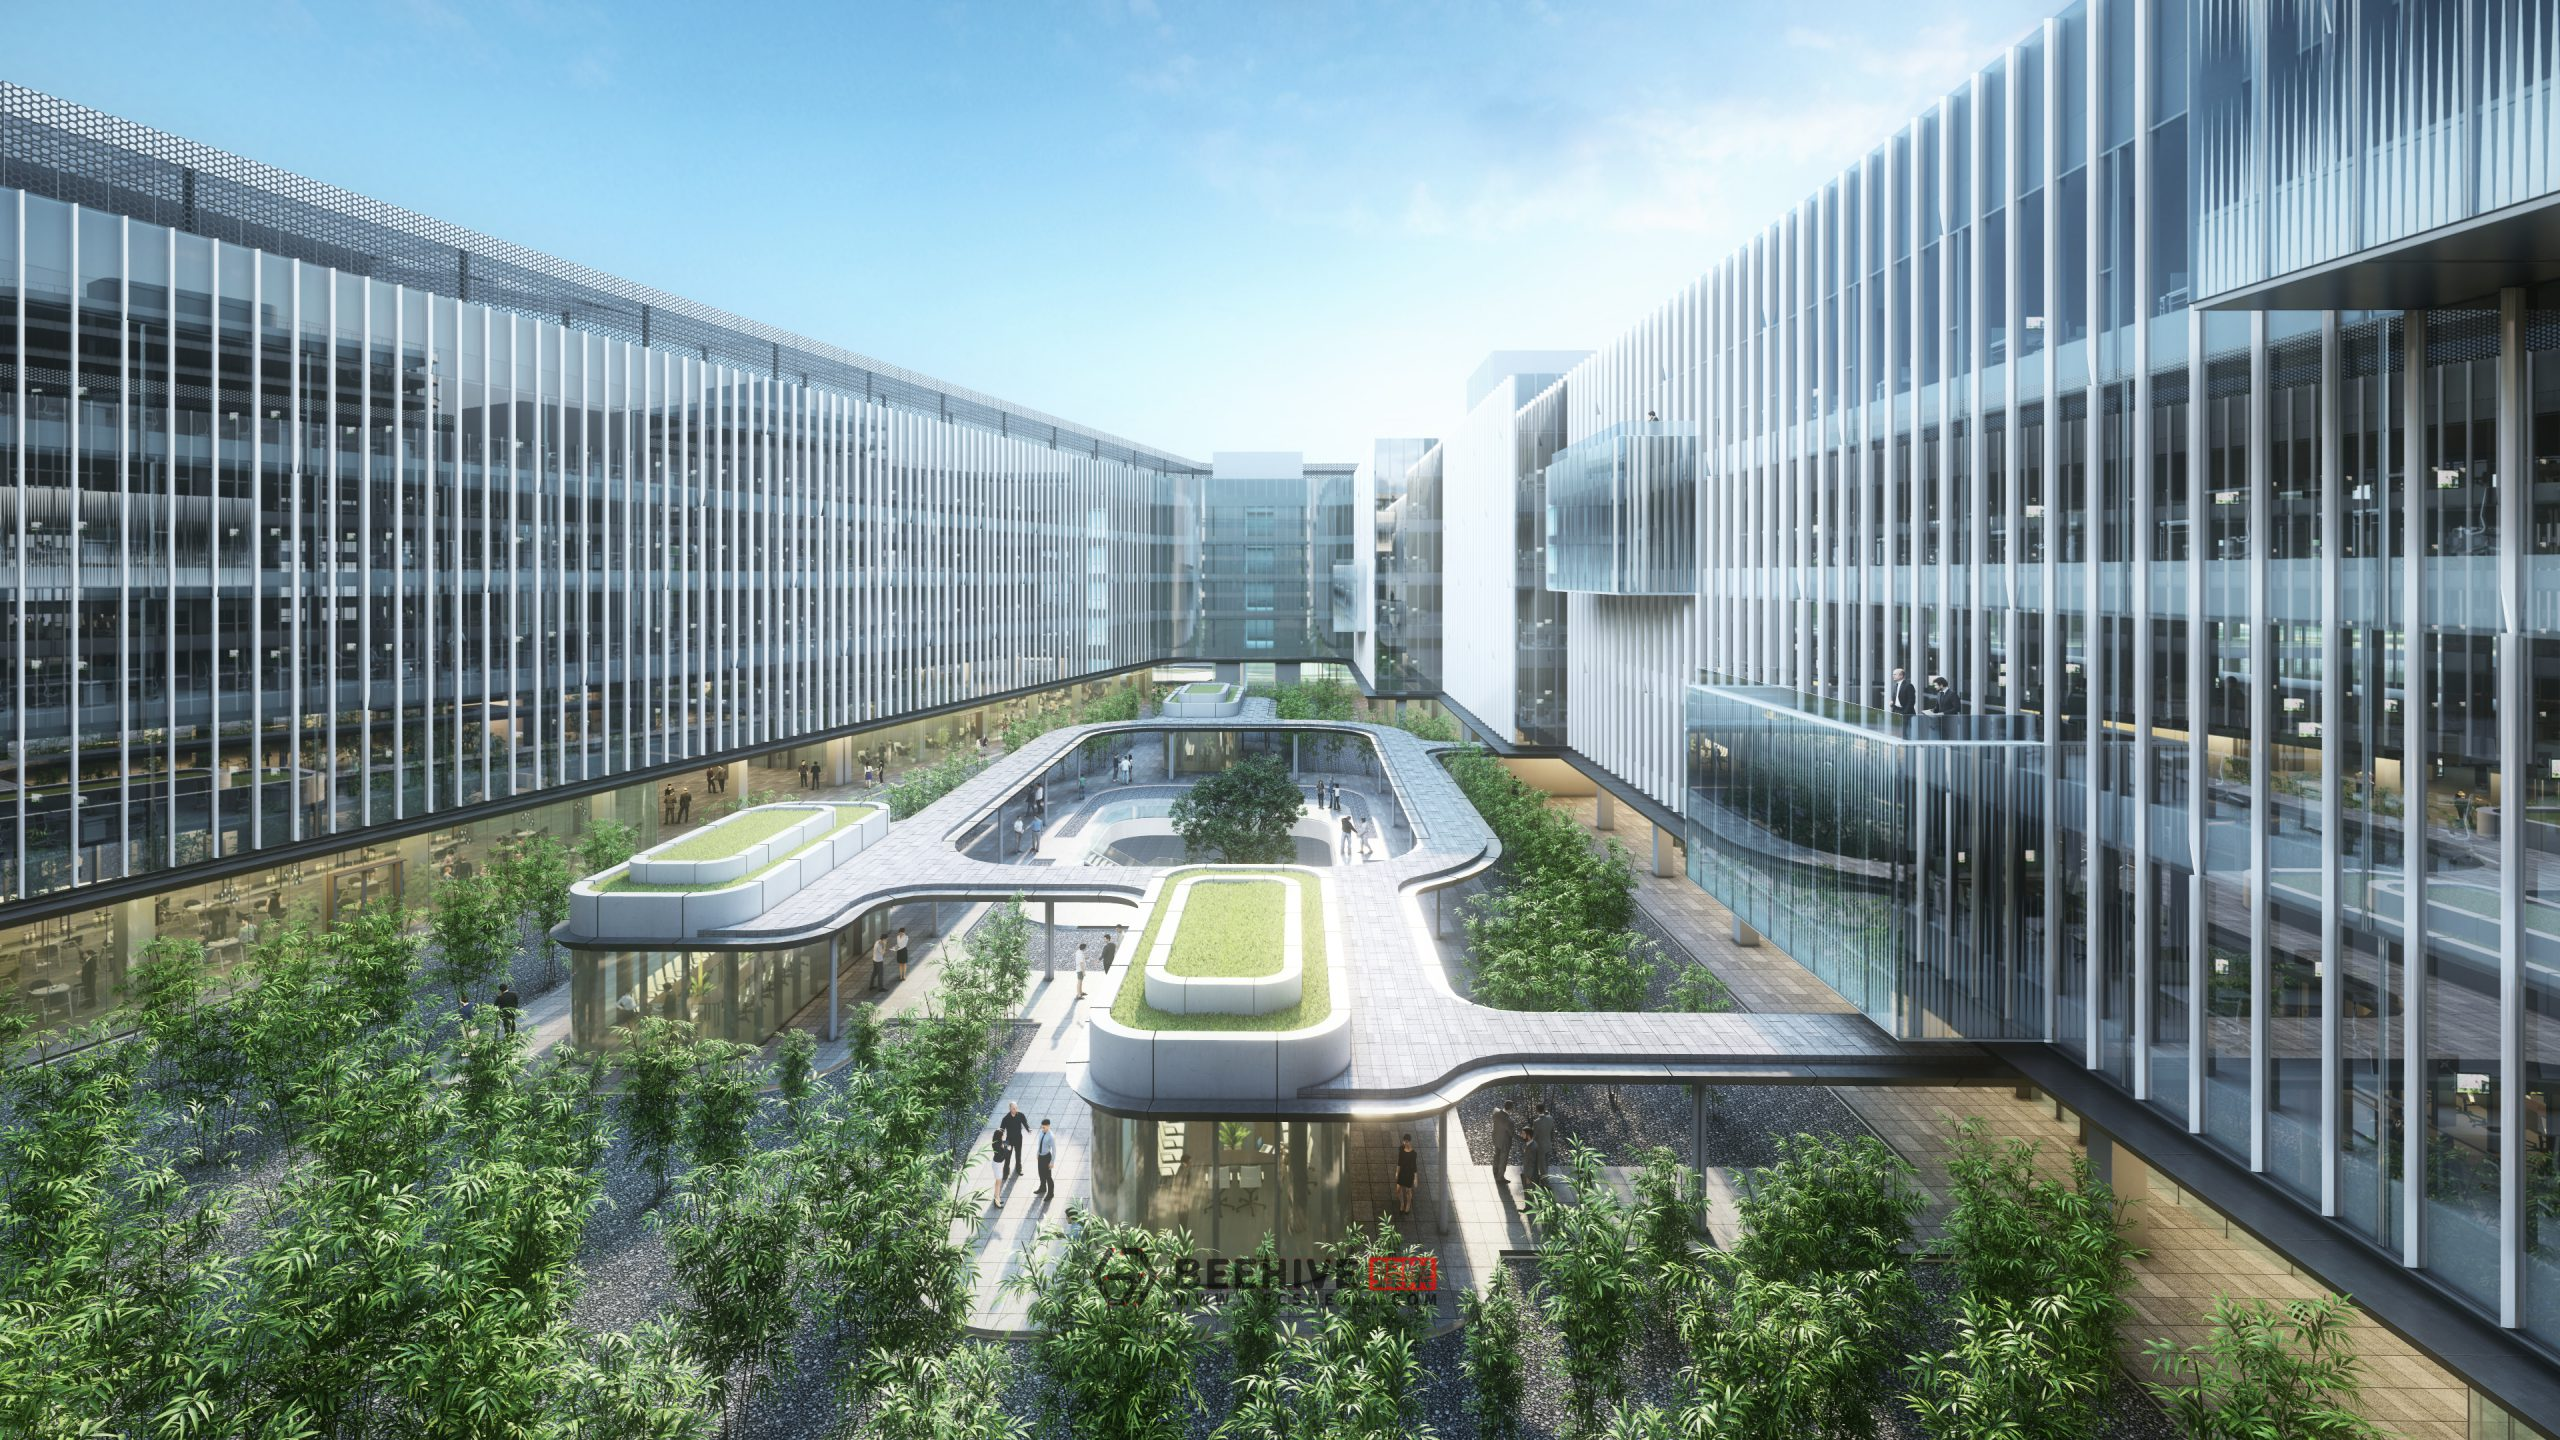 Headquarters and Industry Park for a Renowned Chinese Internet Company. Design and Project Architect: Aedas